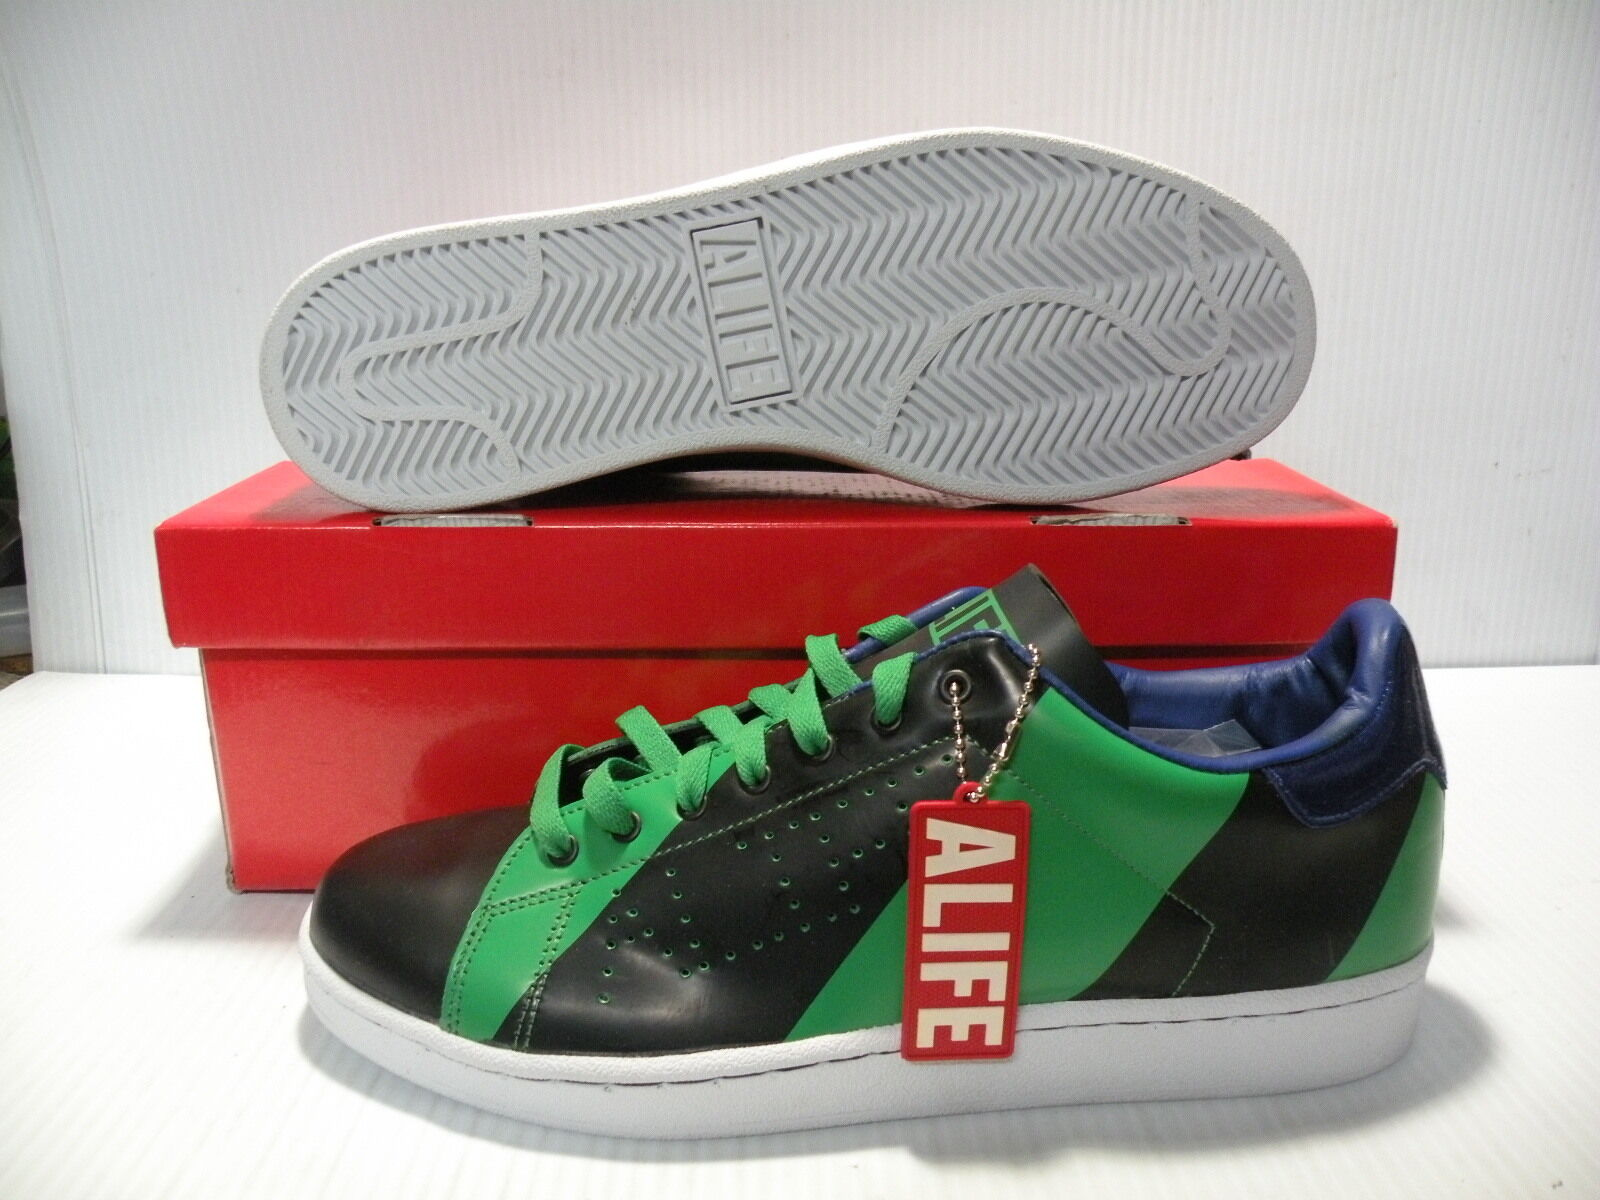 ALIFE COURT CUP-RGB SNEAKERS MEN SHOES GREEN/BLACK/BLUE CCRGBG-F081 SIZE 11 NEW